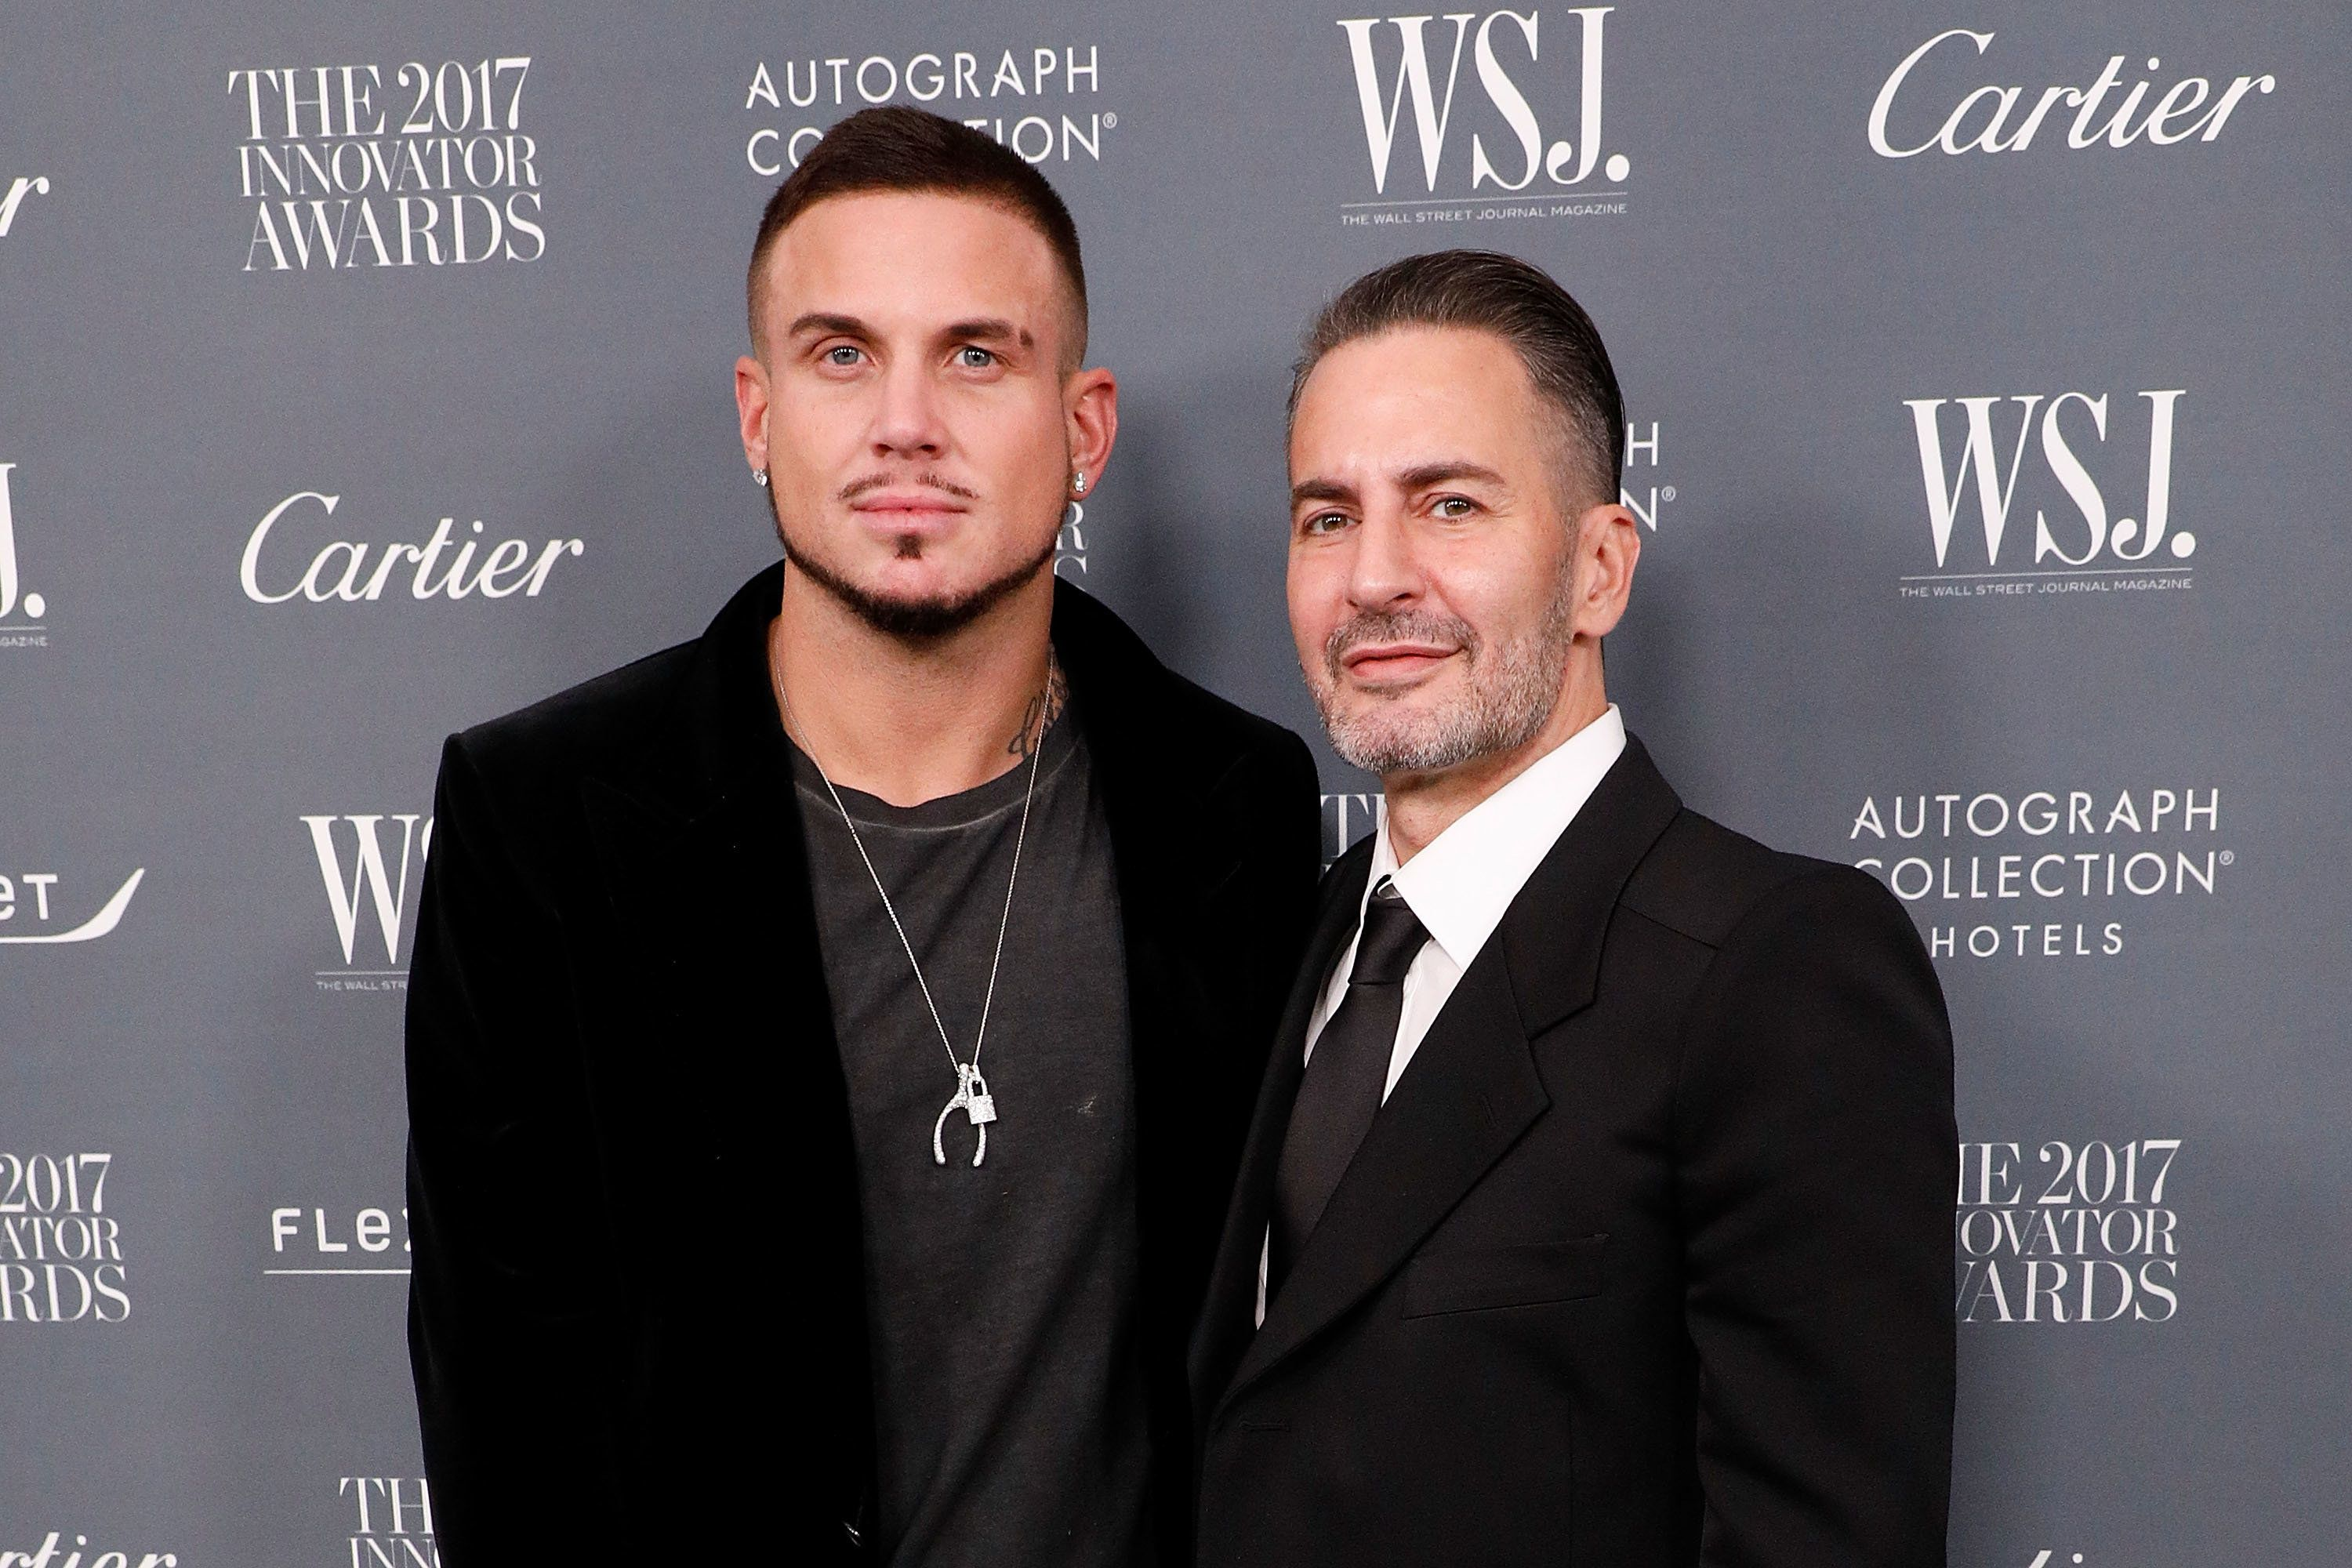 NEW YORK, NY - NOVEMBER 01:  Charly Defrancesco and Marc Jacobs attend the 2017 WSJ Innovator Awards at Museum of Modern Art on November 1, 2017 in New York City.  (Photo by Taylor Hill/WireImage)